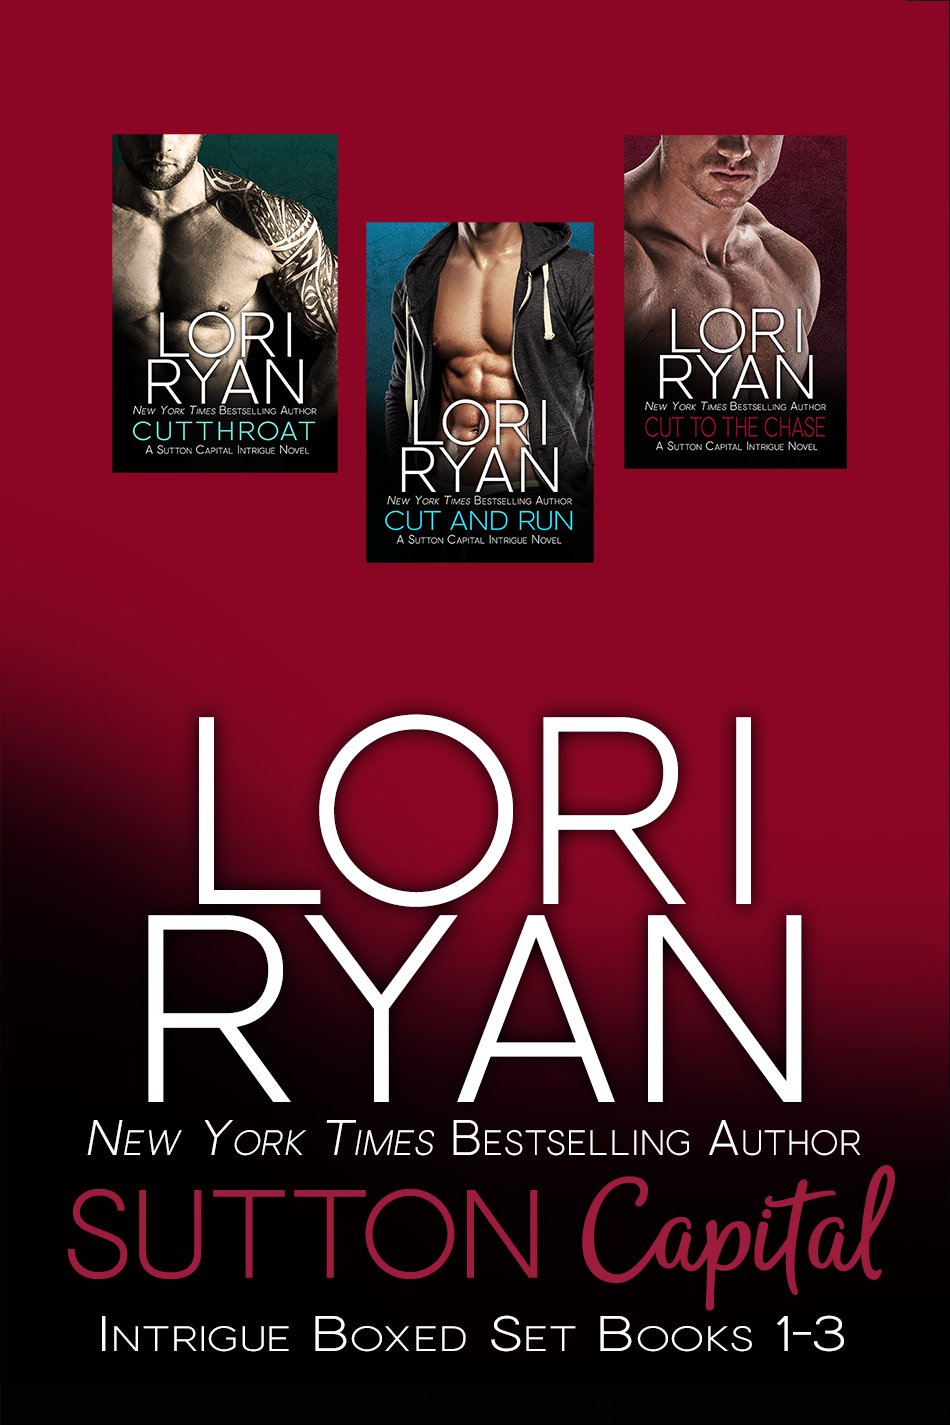 Intrigue Series romantic suspense by NY Times Bestselling Author Lori Ryan